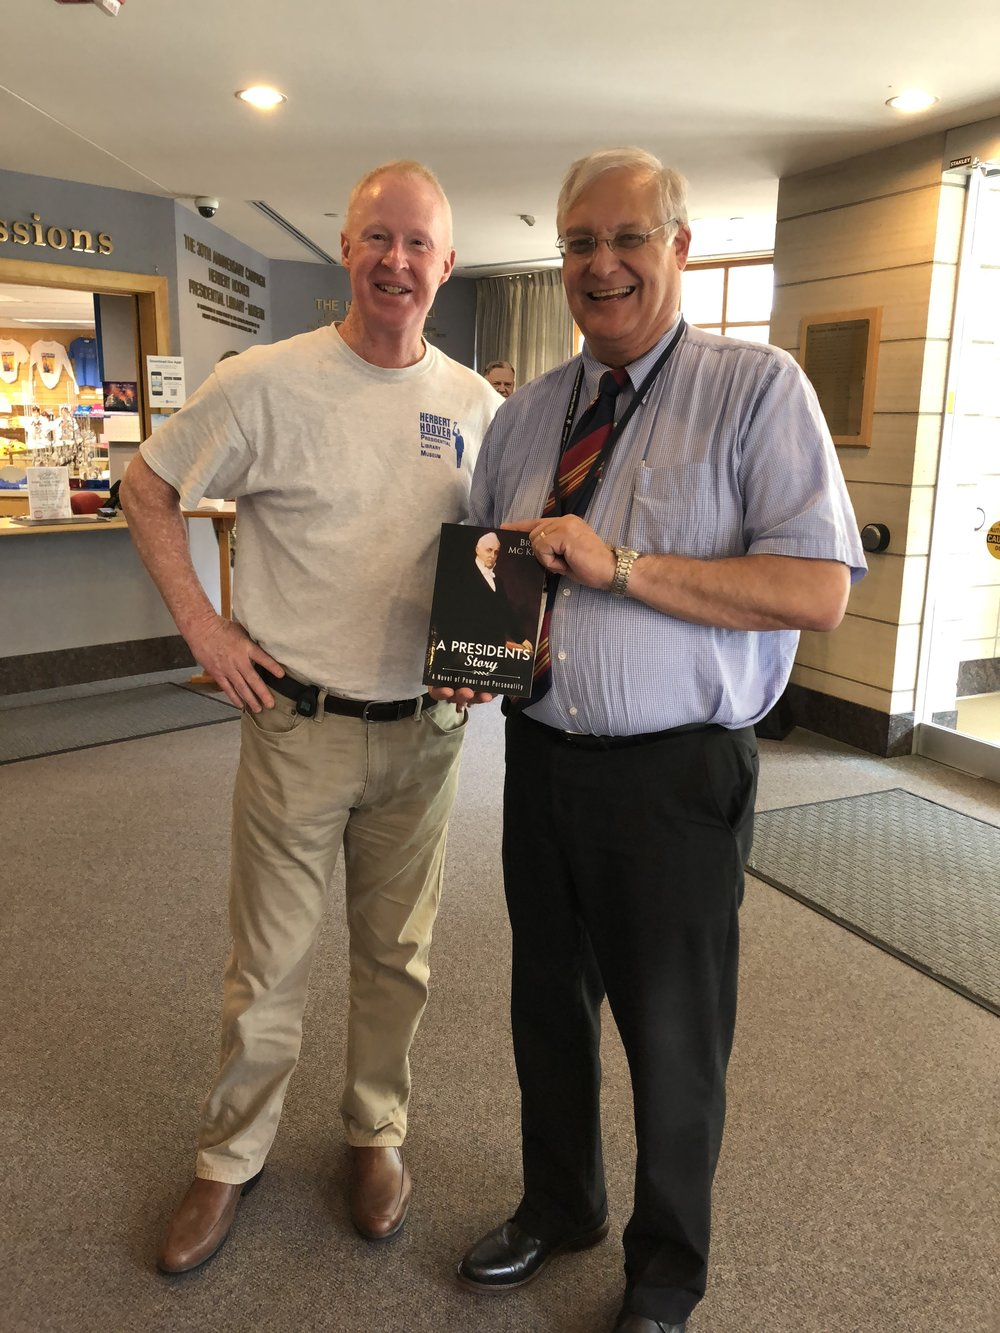 I had the privilege of doing a book signing event in the lobby of the Hoover Museum and Library. Here I am with Tom Schwartz, Director of the Museum and Library and a very nice fellow. Tom was also instrumental in putting together the Lincoln Museum and Library in Springfield which is a must see as well.